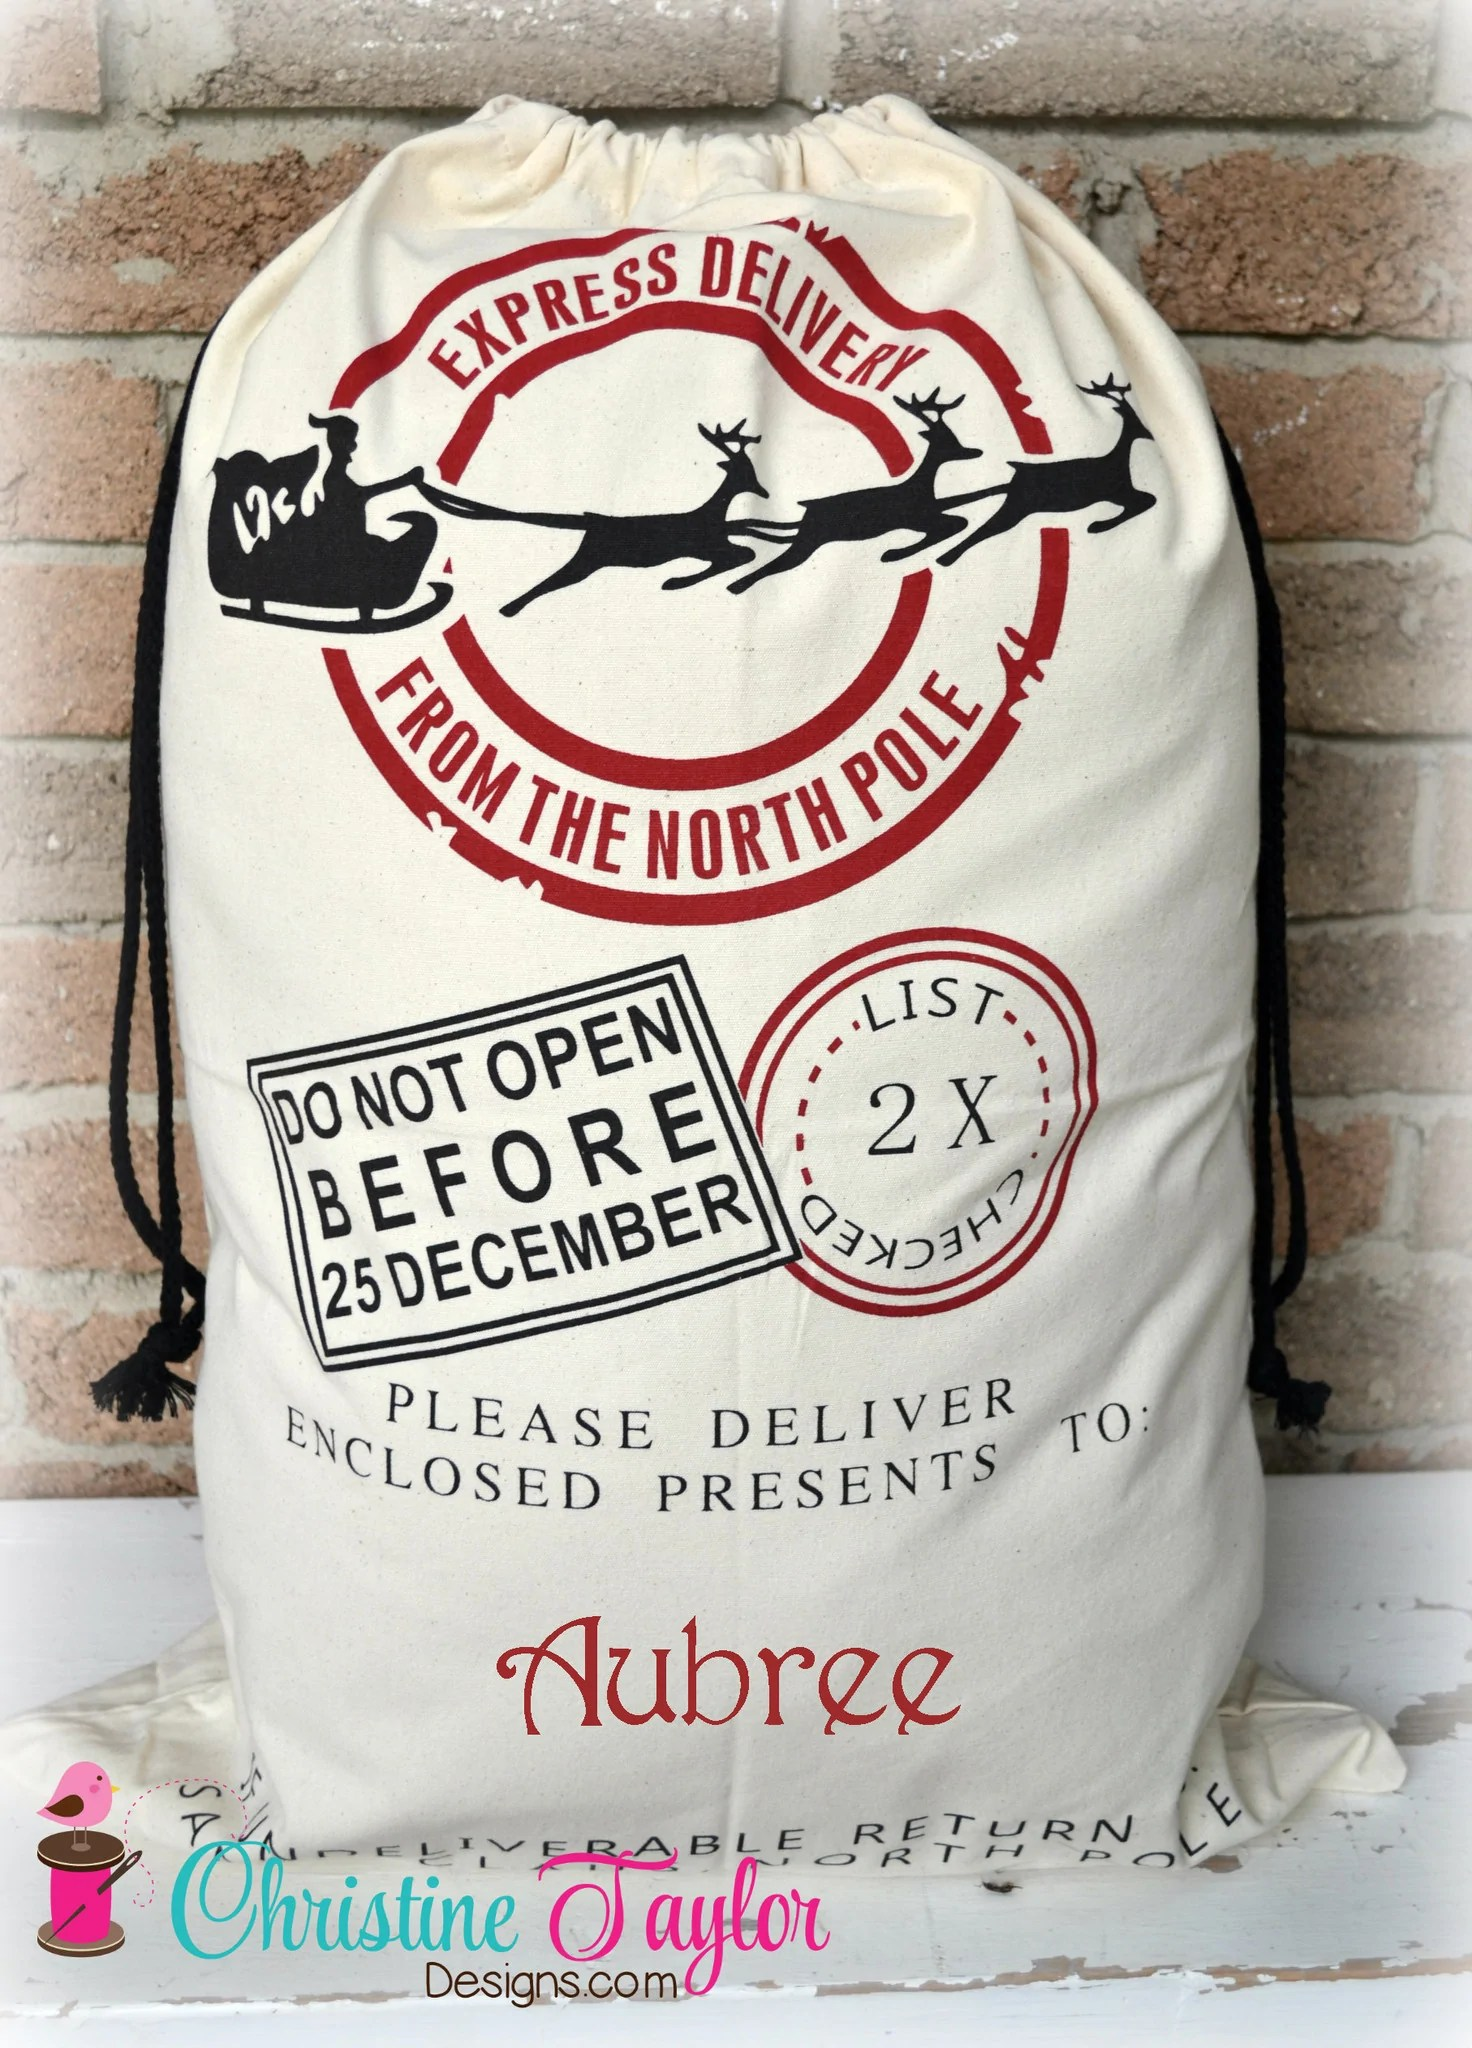 Personalized Santa Sacks Santa Sleigh Design CREAM SACK